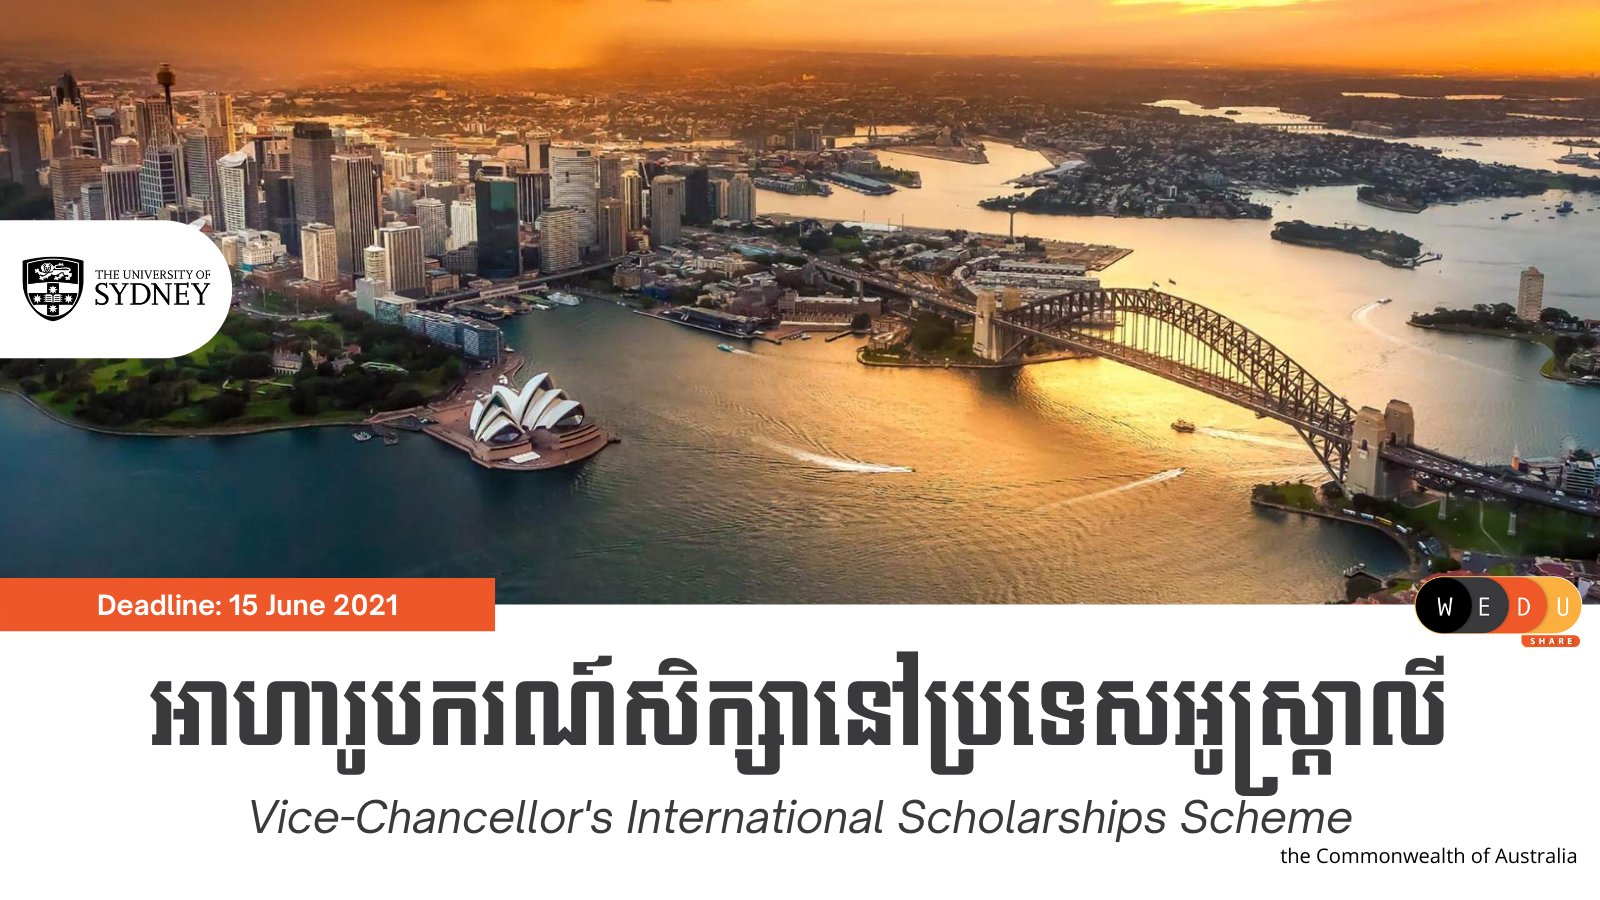 Vice-Chancellor's International Scholarships Scheme